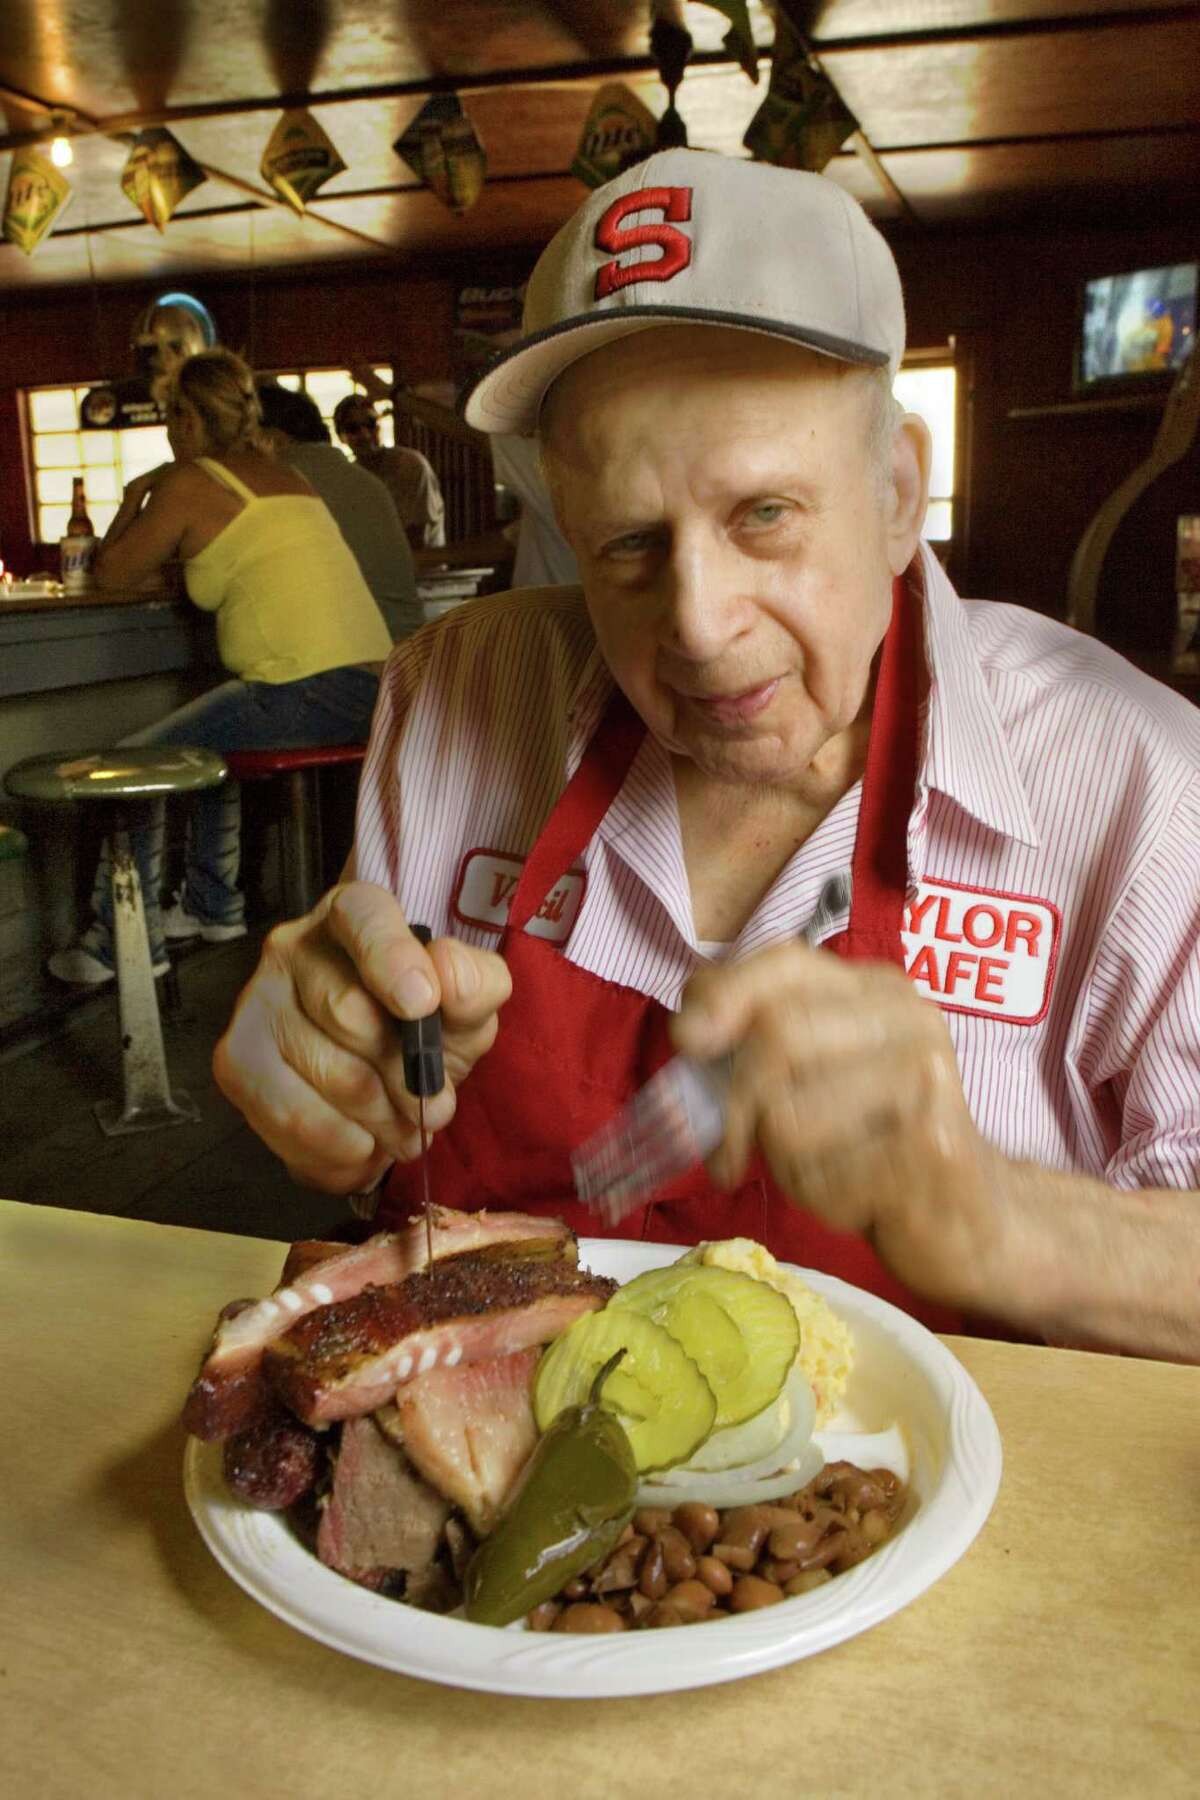 Vencil Mares, owner of Taylor Café, opened his barbecue